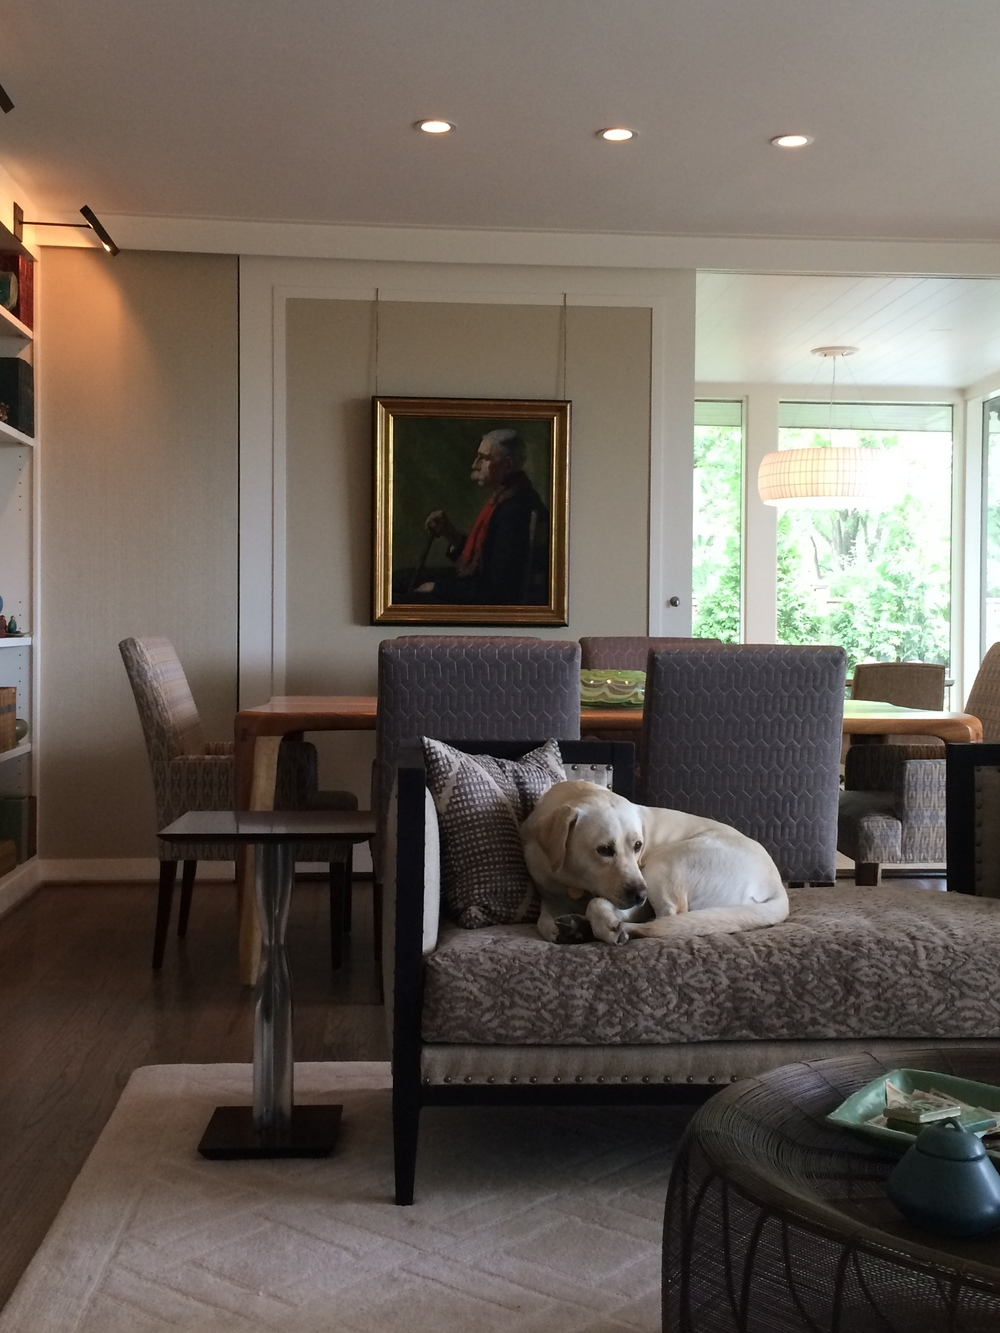 When we meet with our clients, we employ our signature DIGSYou questionnaire to delve into not just aesthetic values, but also how they live. This decorating project included fabrics on all furniture that could withstand pet perching.